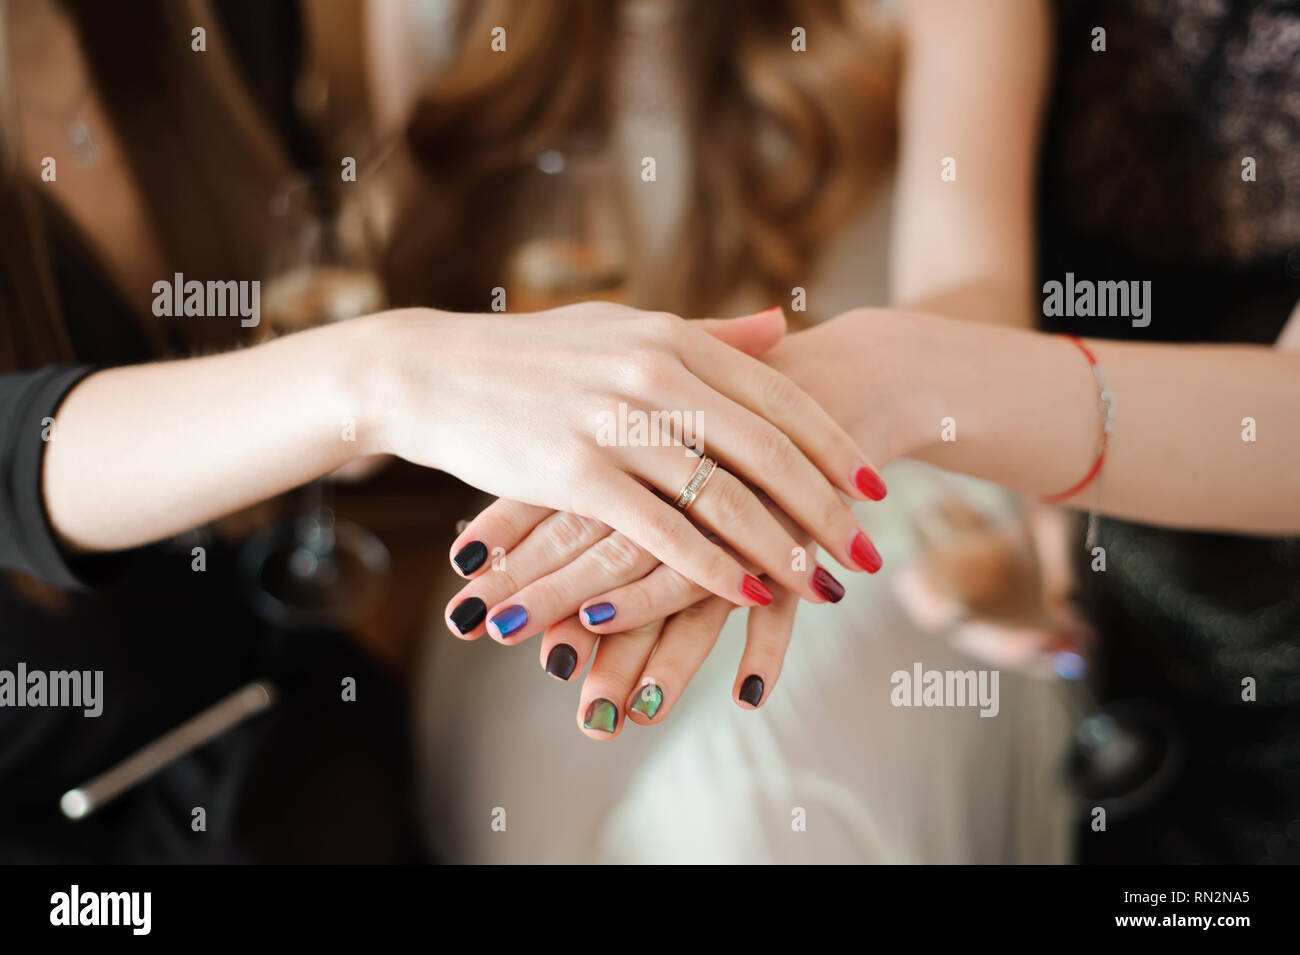 Join Hands Cancer Campaign Care Charity Union Concept. Stock Photo